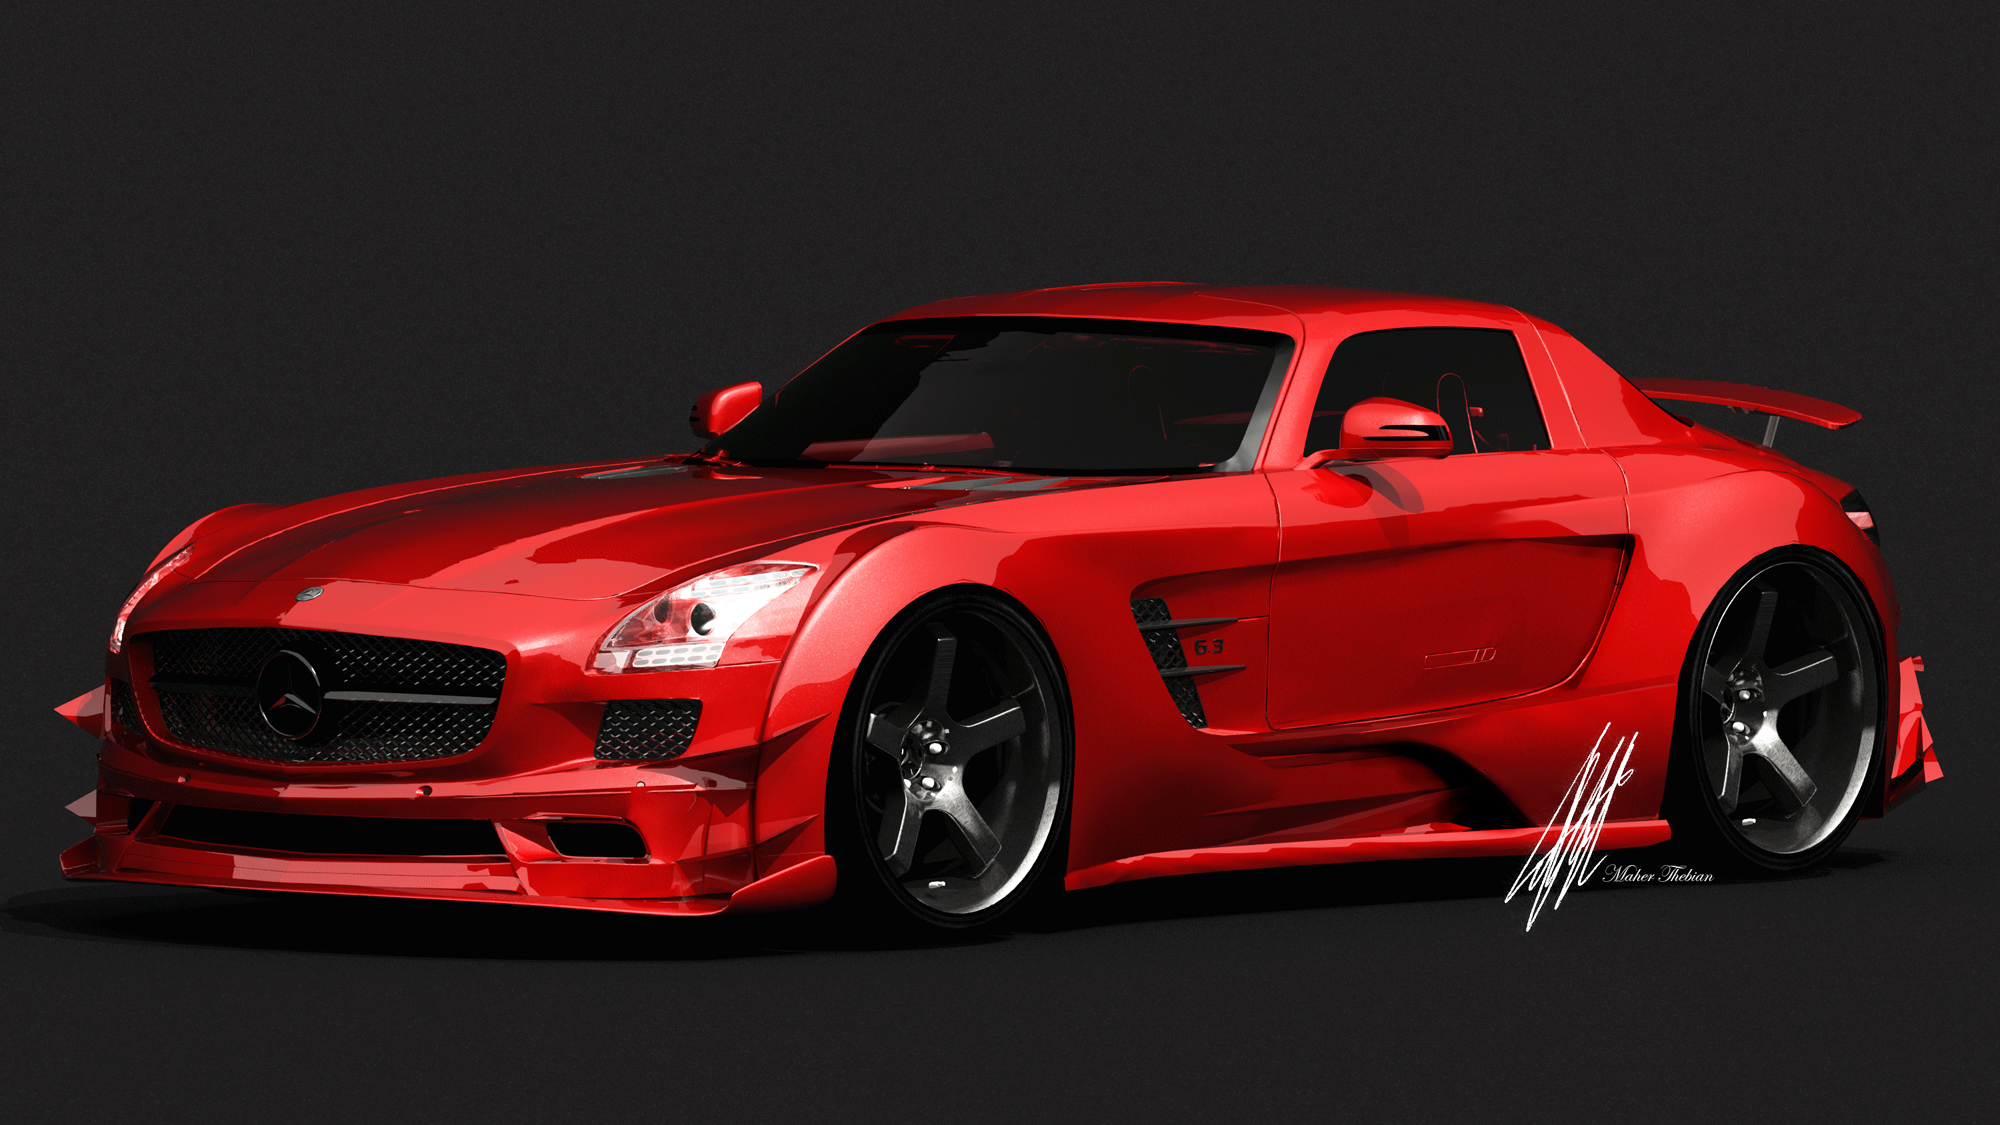 Sls black series full hd wallpaper and background image for Mercedes benz sports cars